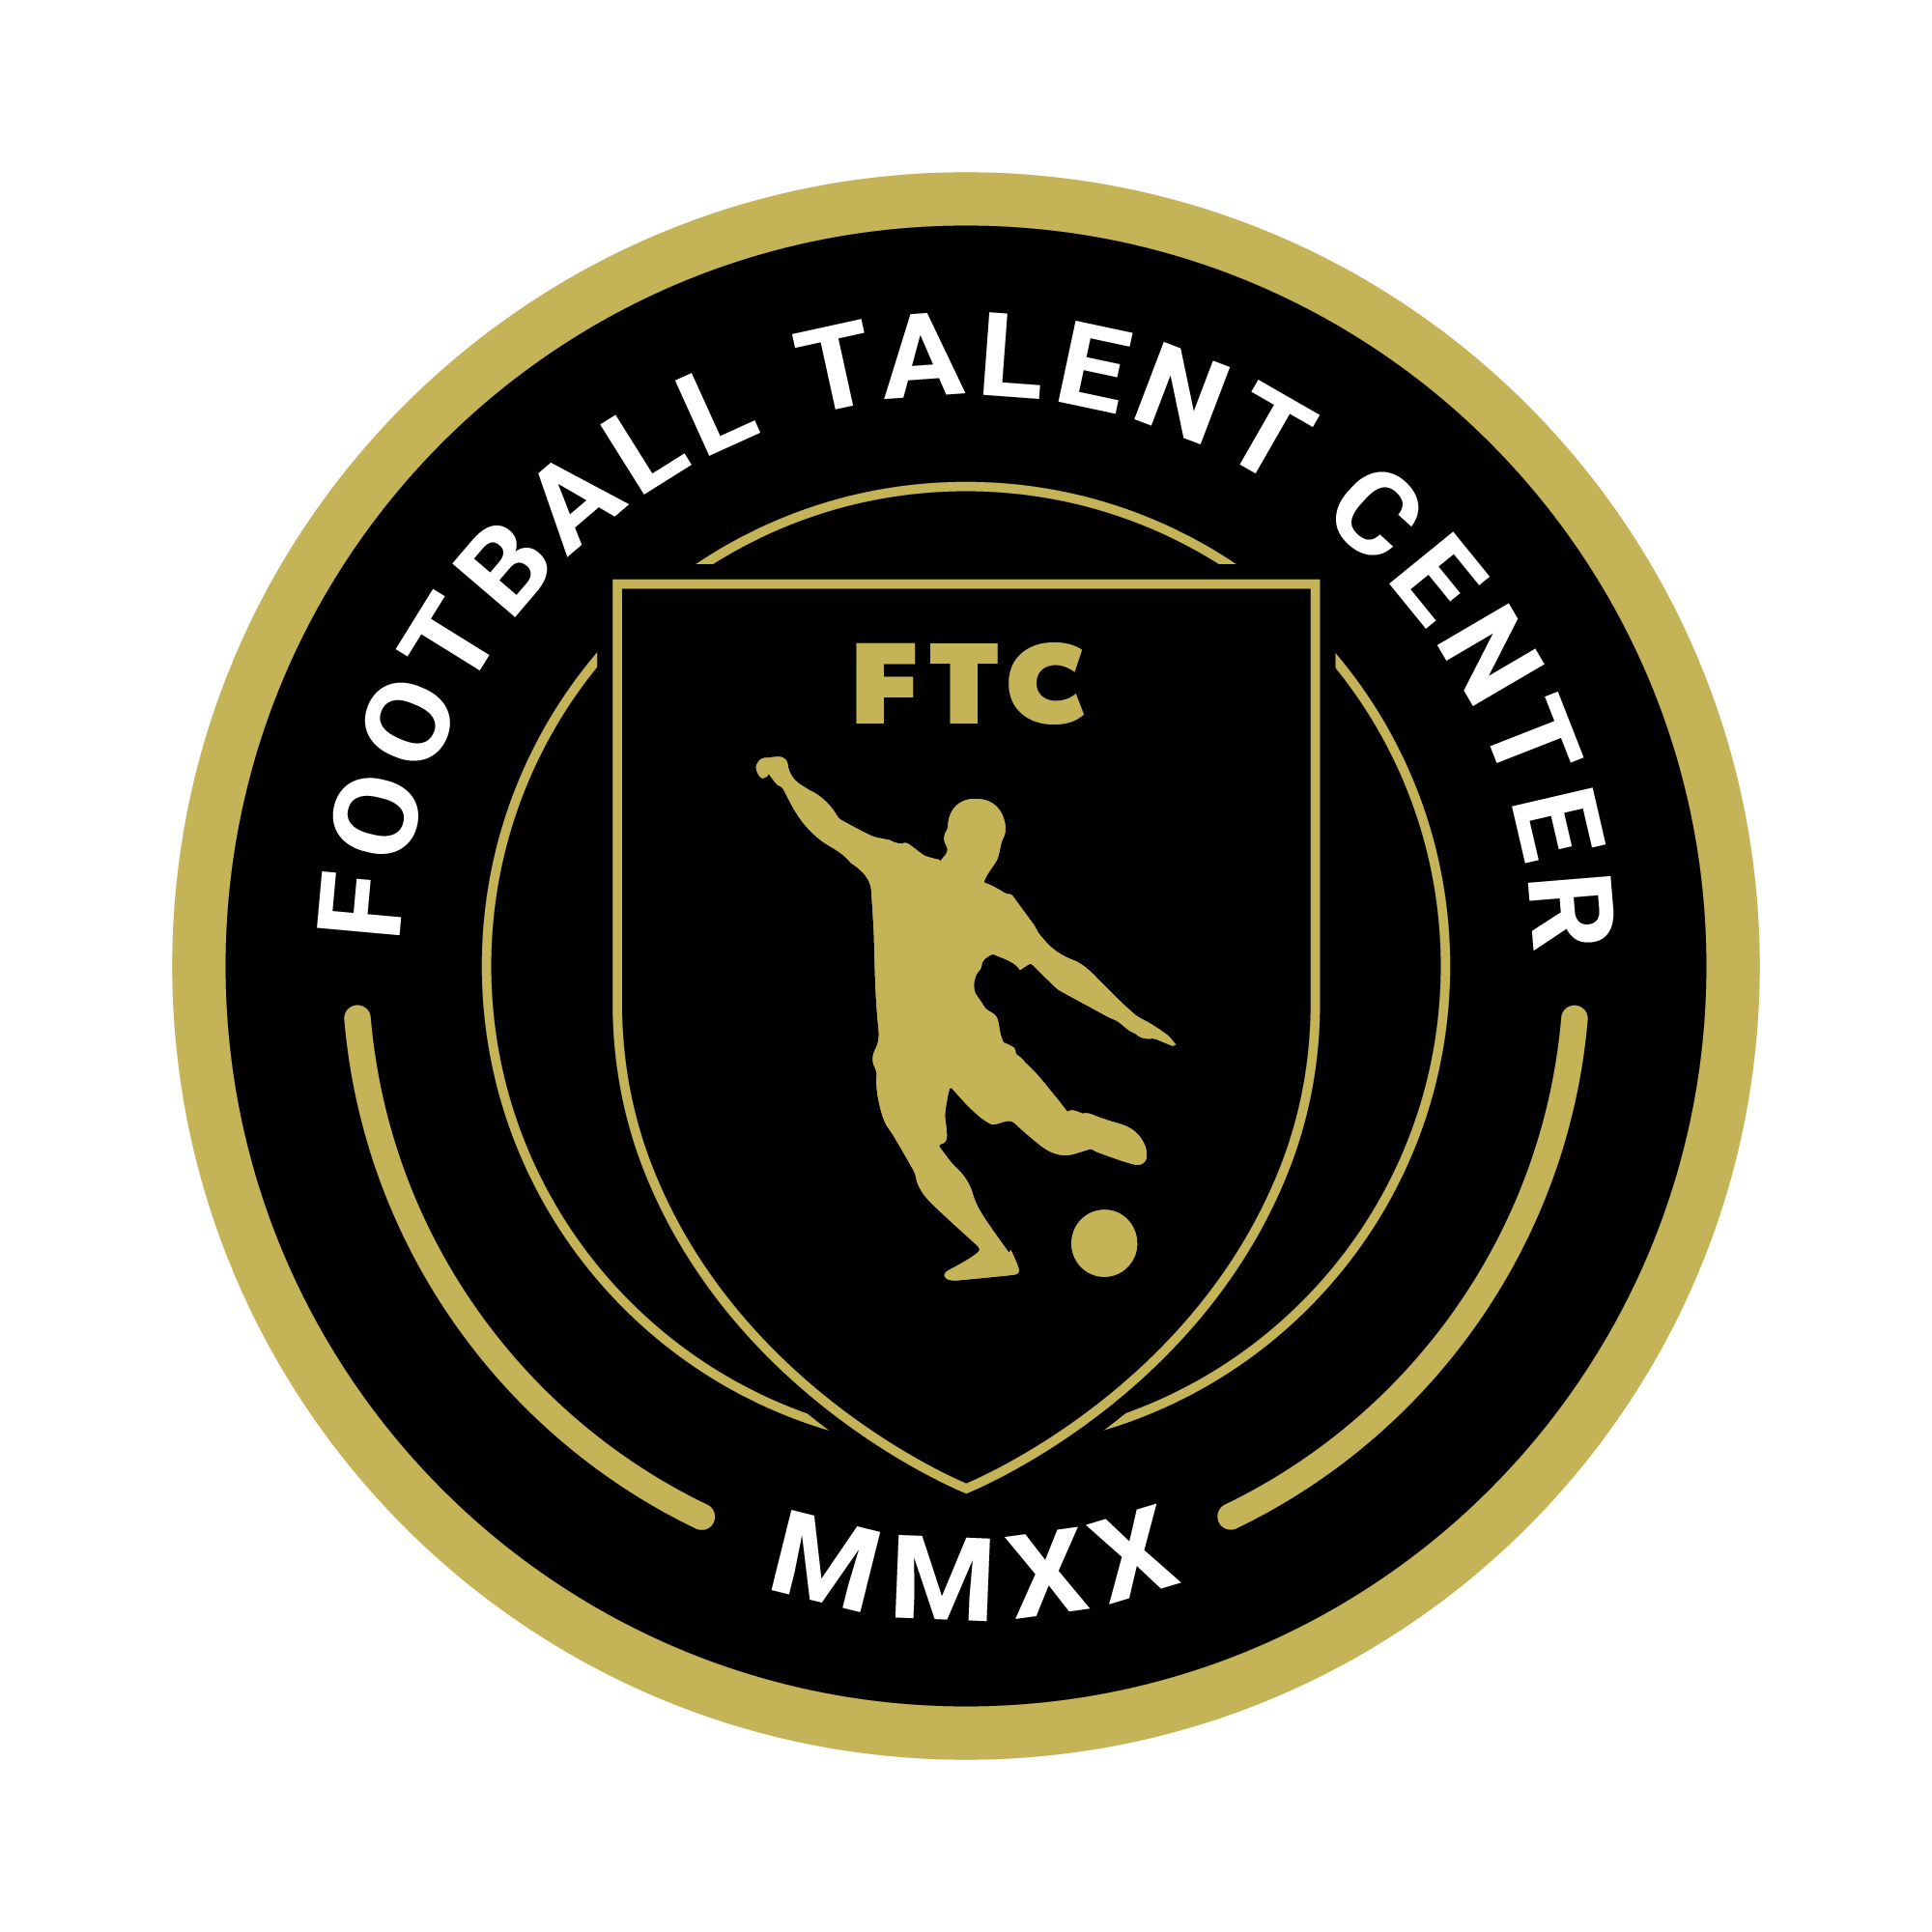 Logo-football-talent-center